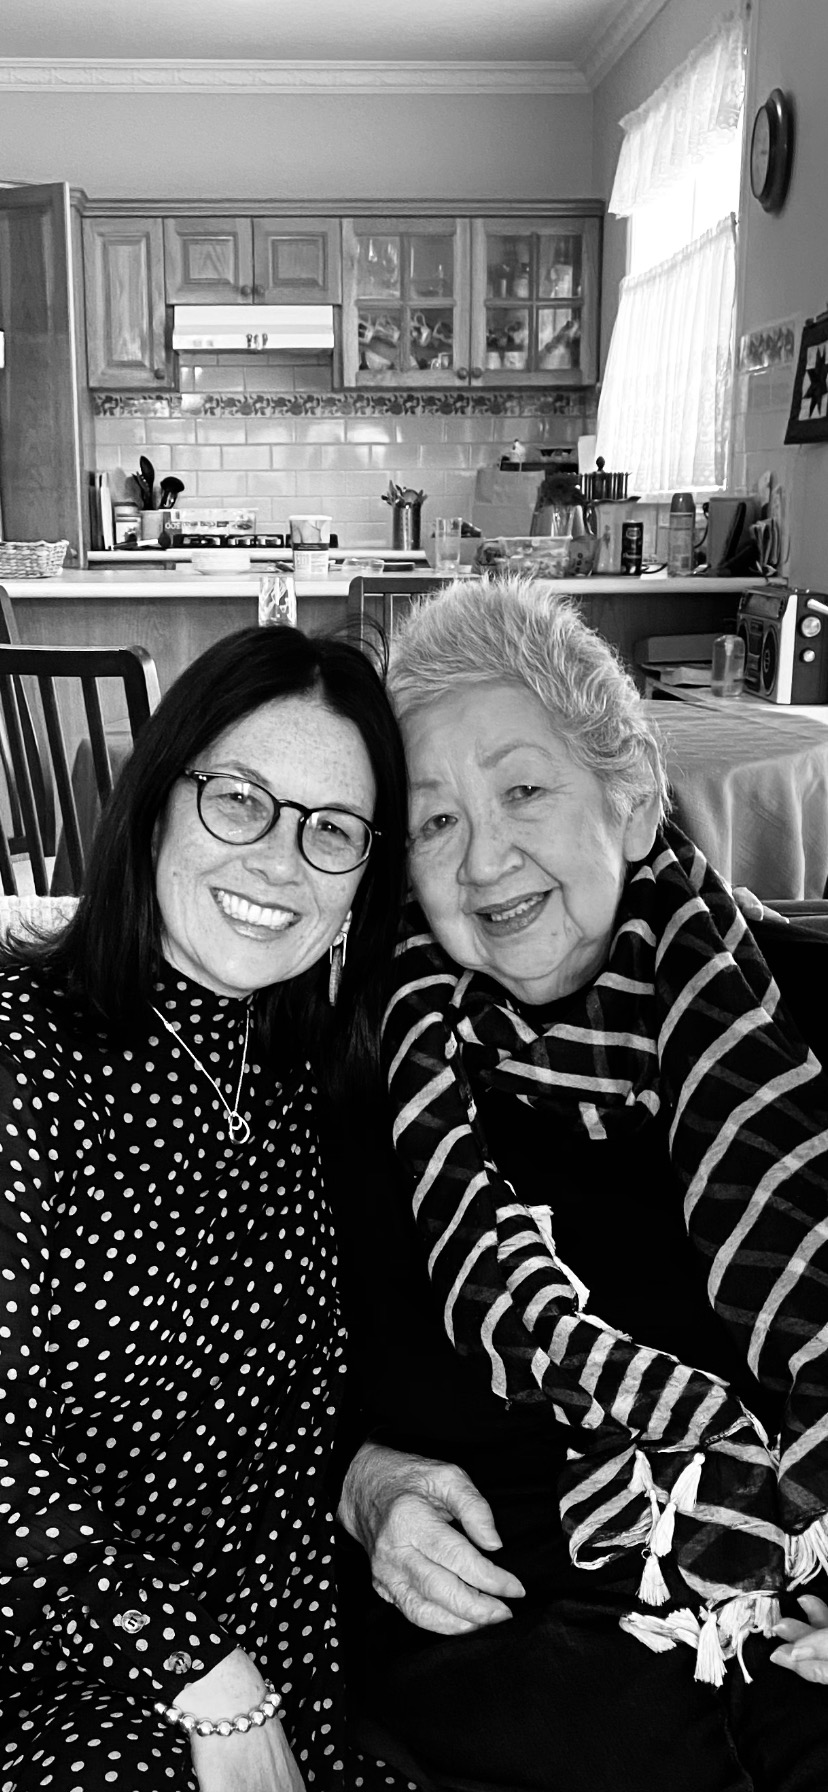 Janice and Kym Murdoch before her death through Voluntary Assisted Dying